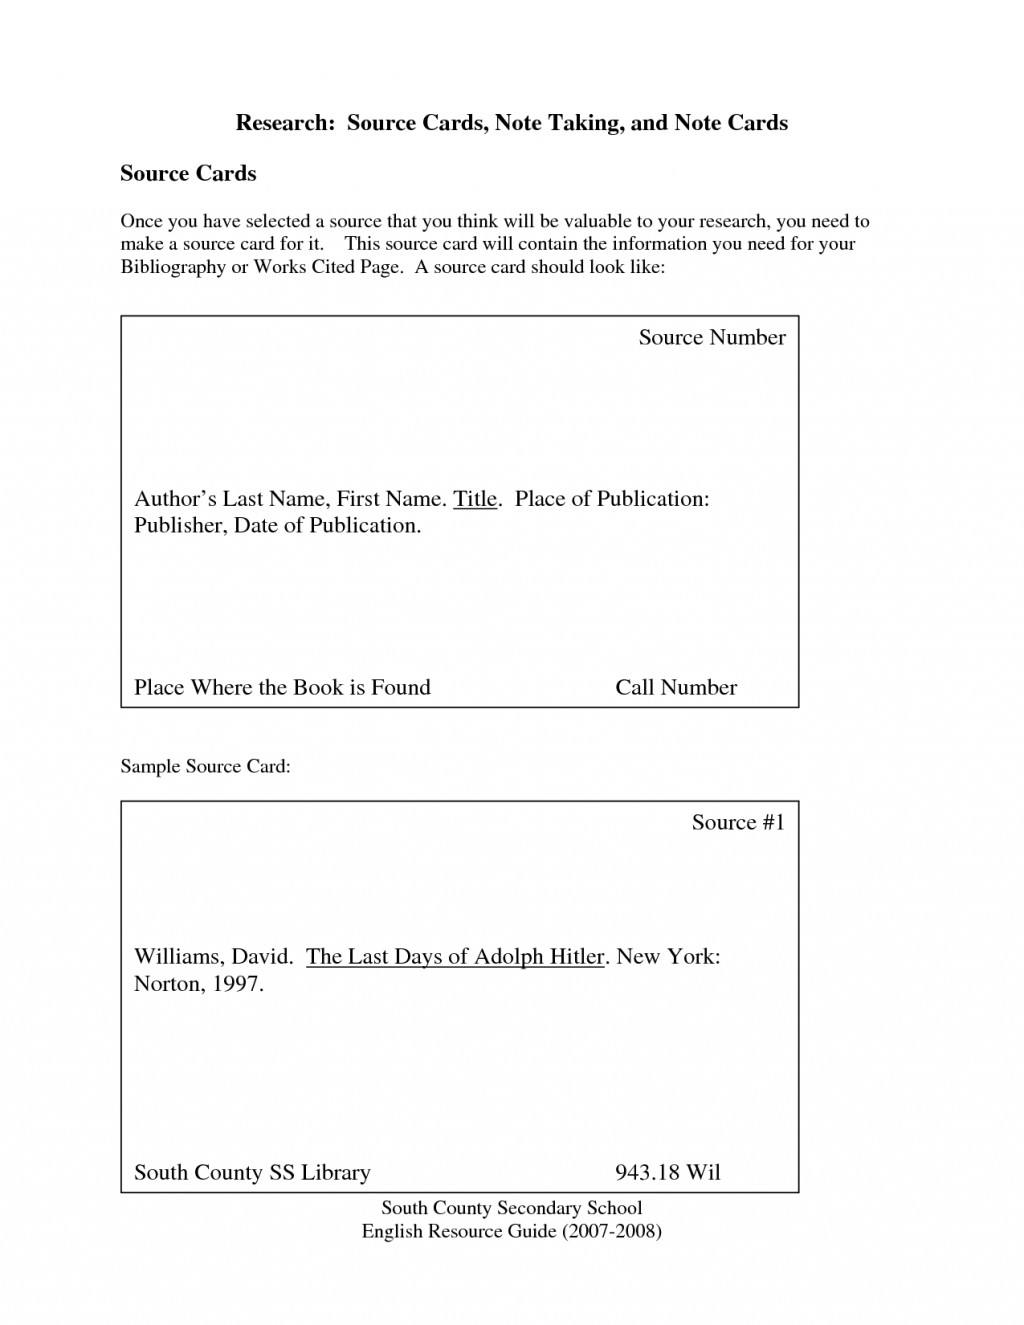 013 Research Paper Note Card Templates 442160 Cards Rare For Taking Papers System Example Of Notecards Large